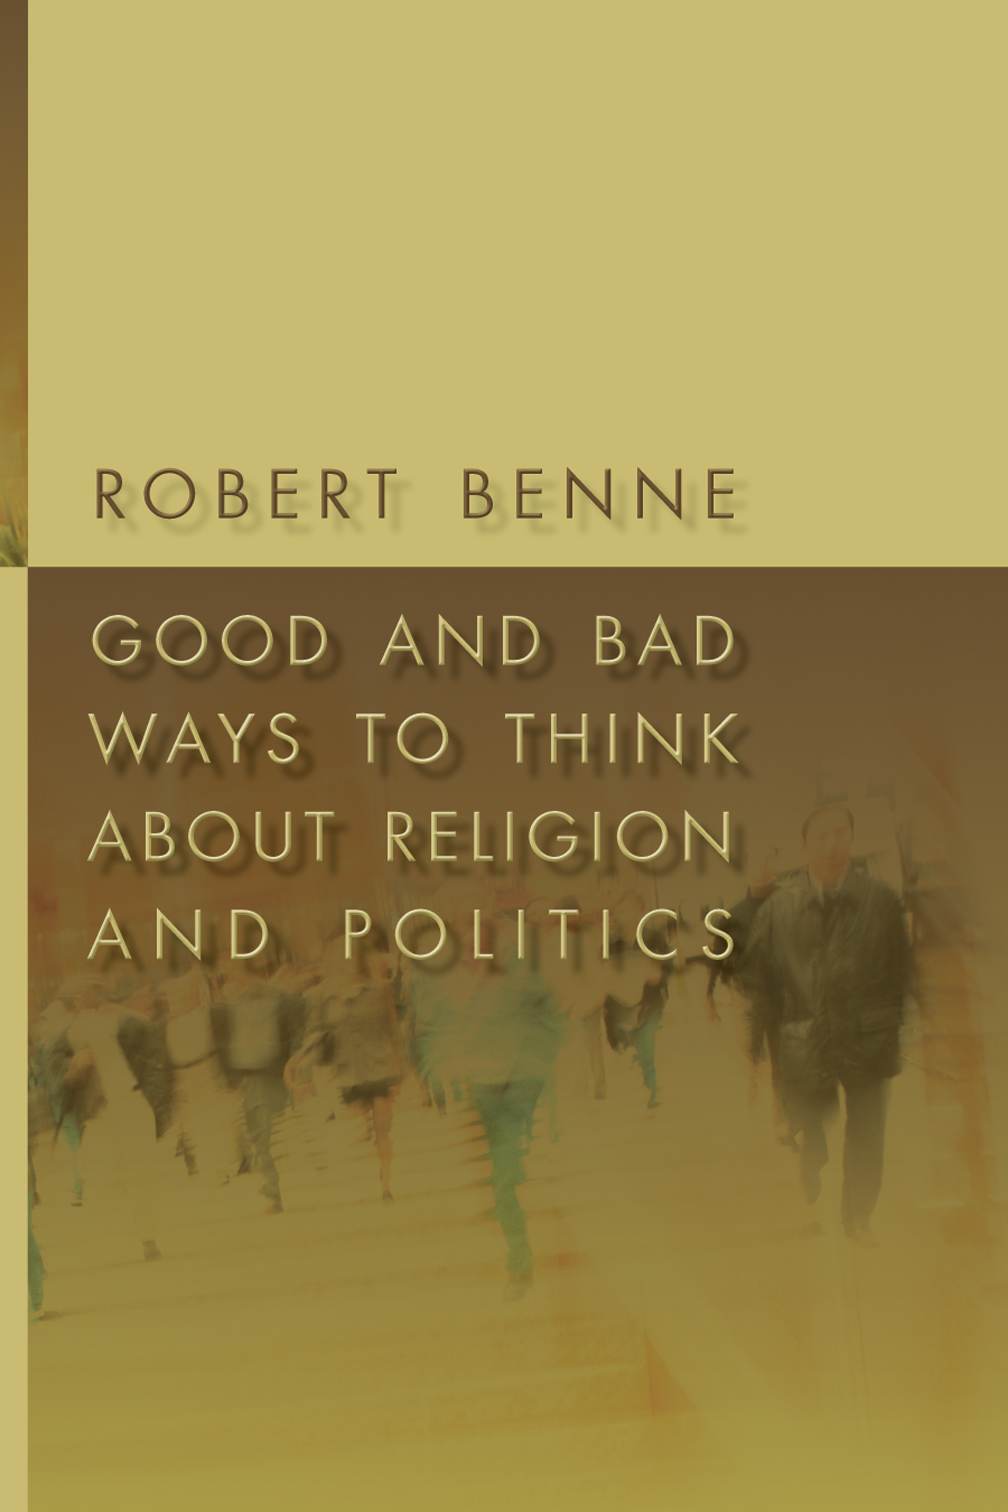 Good and Bad Ways to Think about Religion and Politics